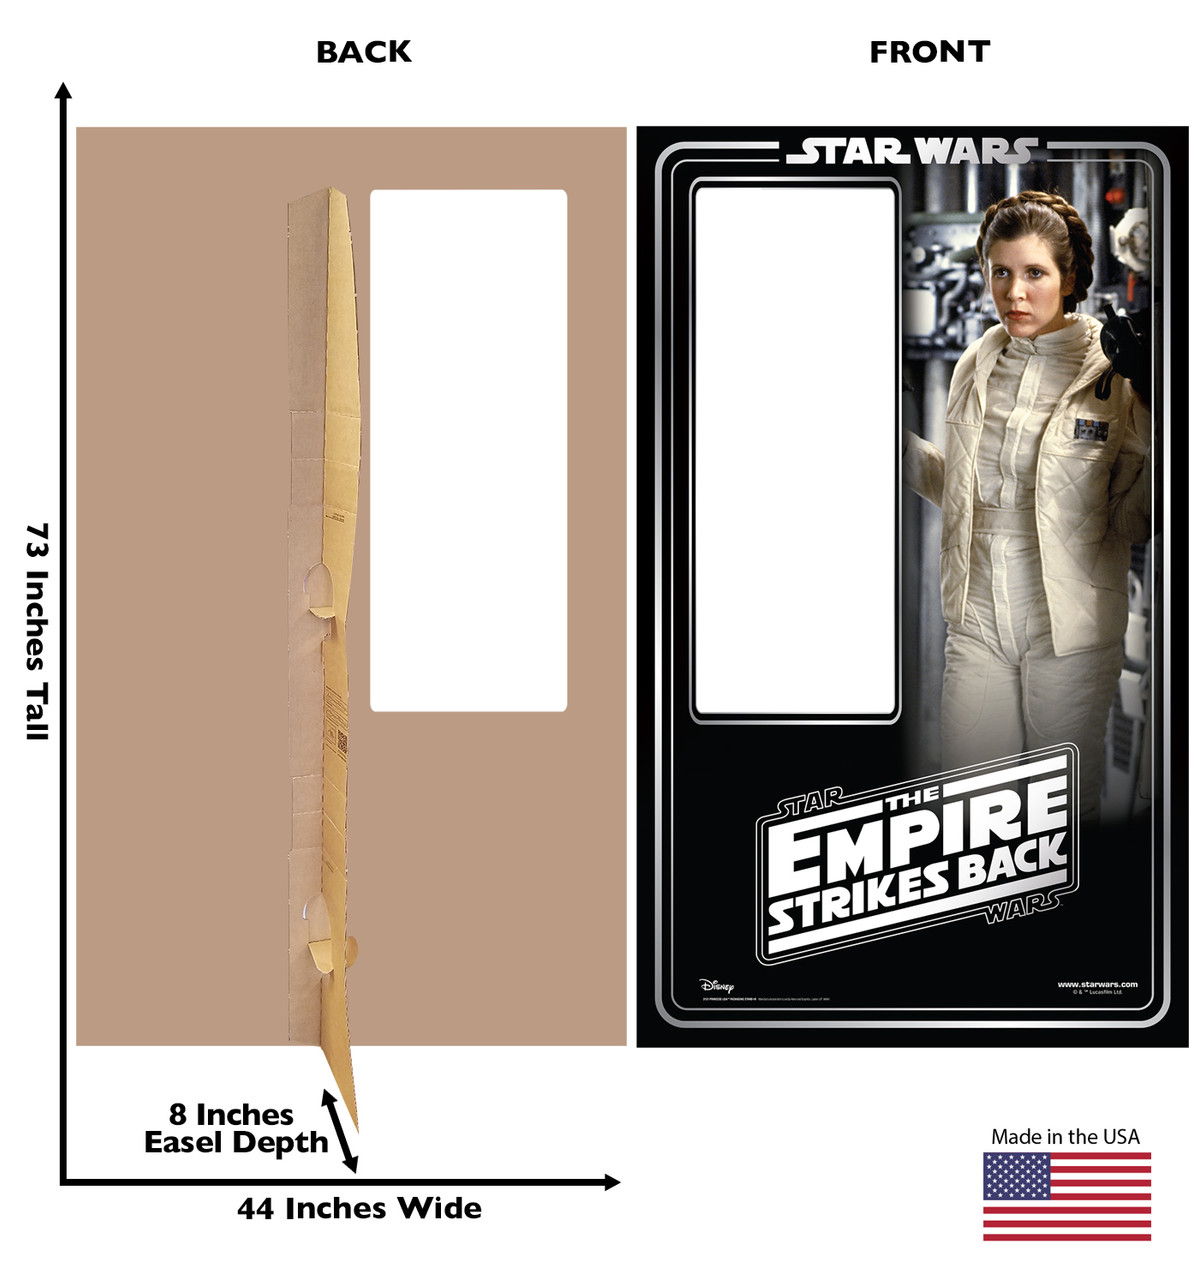 Life-size cardboard standin of Princess Leia Packaging. Celebrating 40 years, with front and back dimensions.